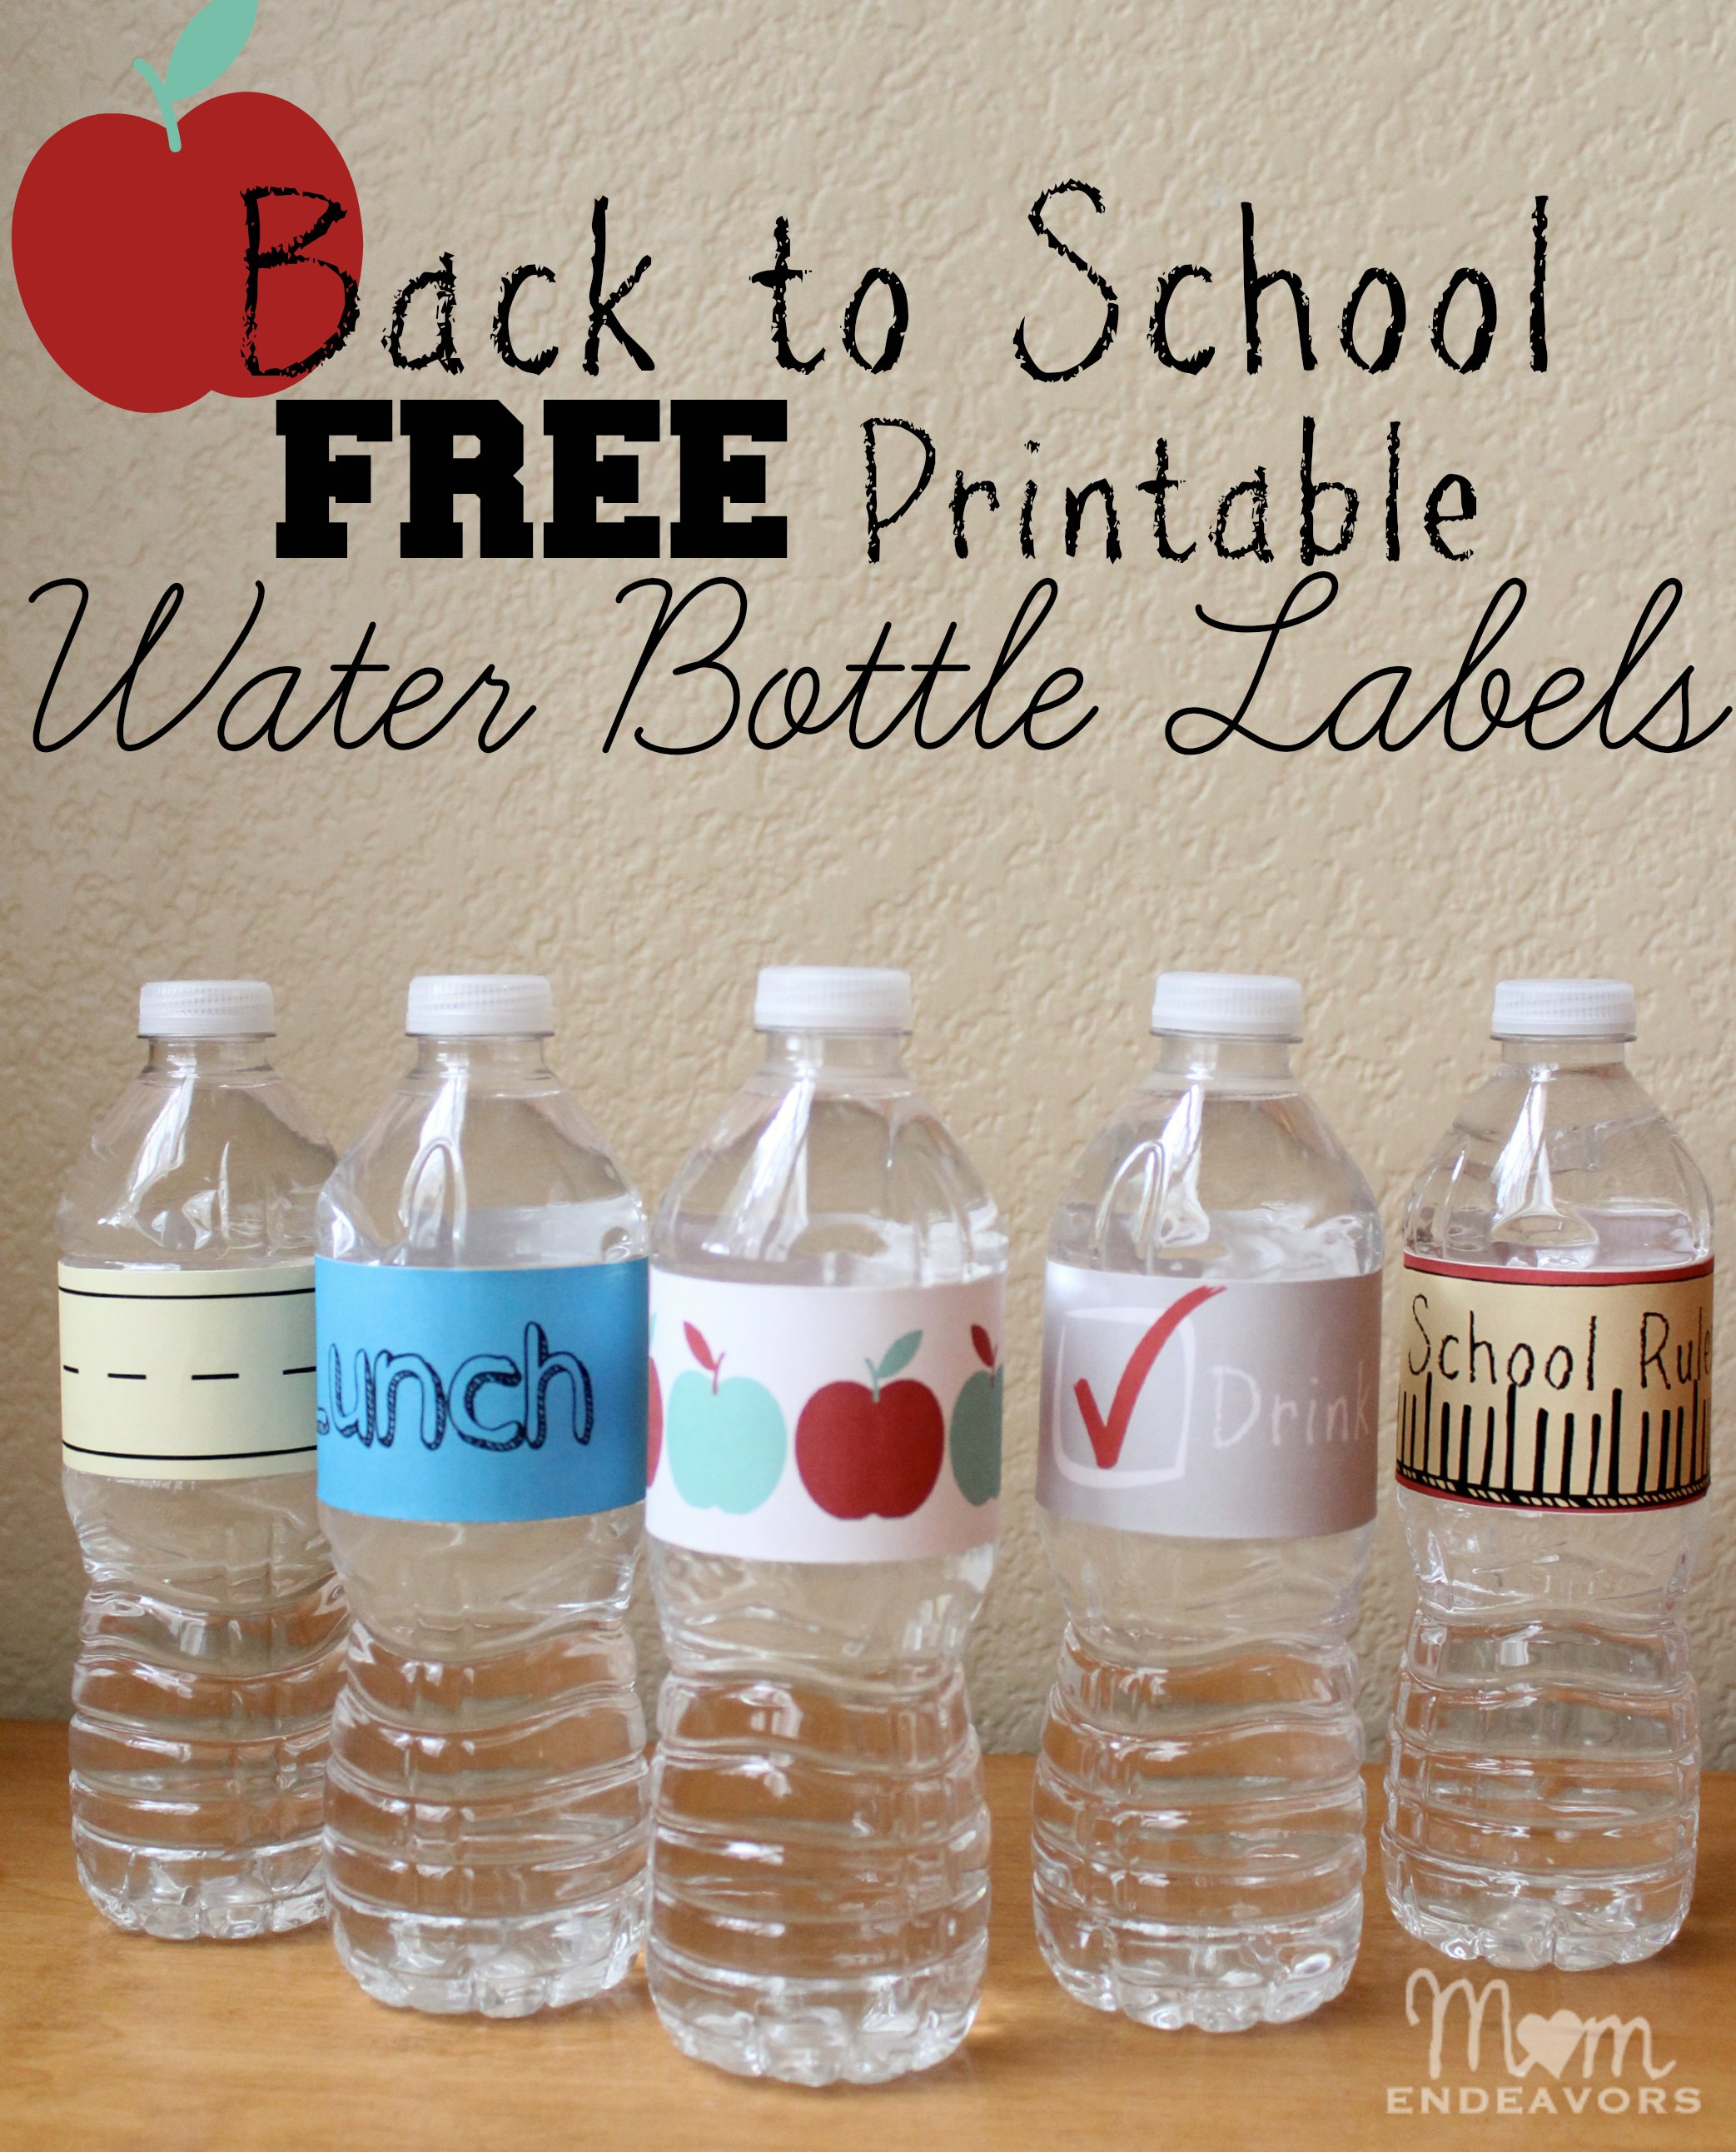 Agile image intended for printable water bottle labels free